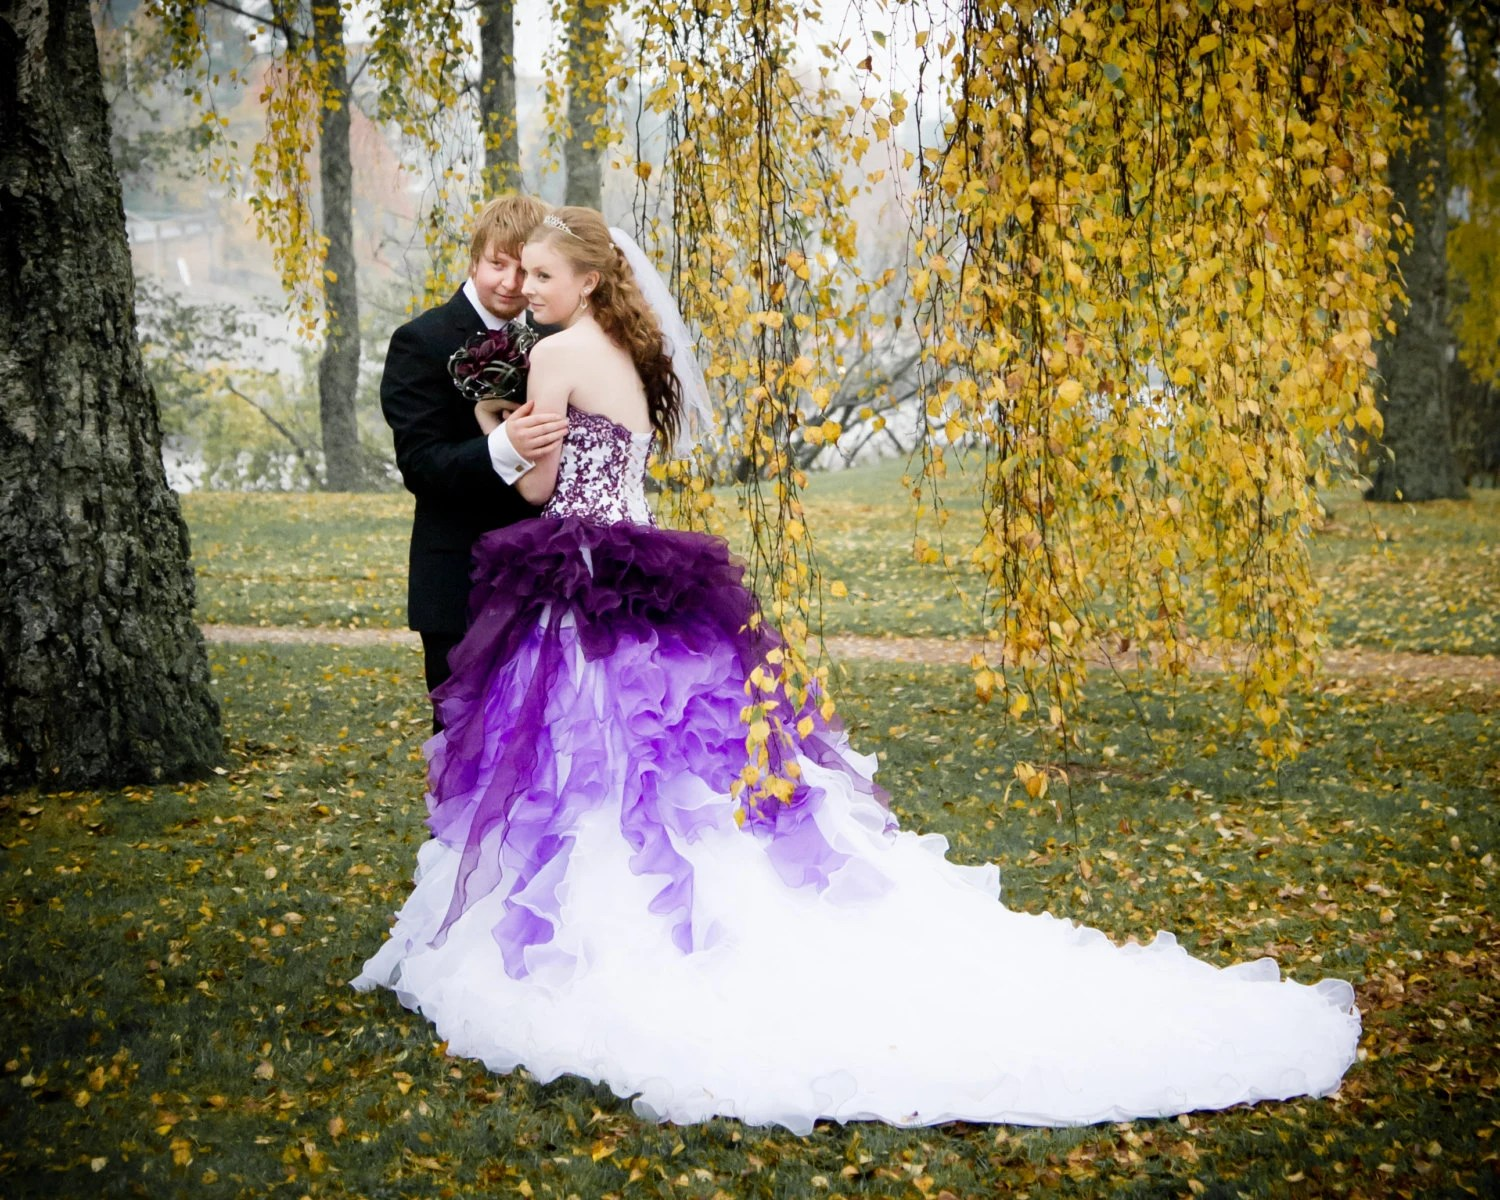 ombre wedding dress steampunk wedding dresses Dip Dye Purple and White Ombre Wedding Dress Strapless with Lace and Organza